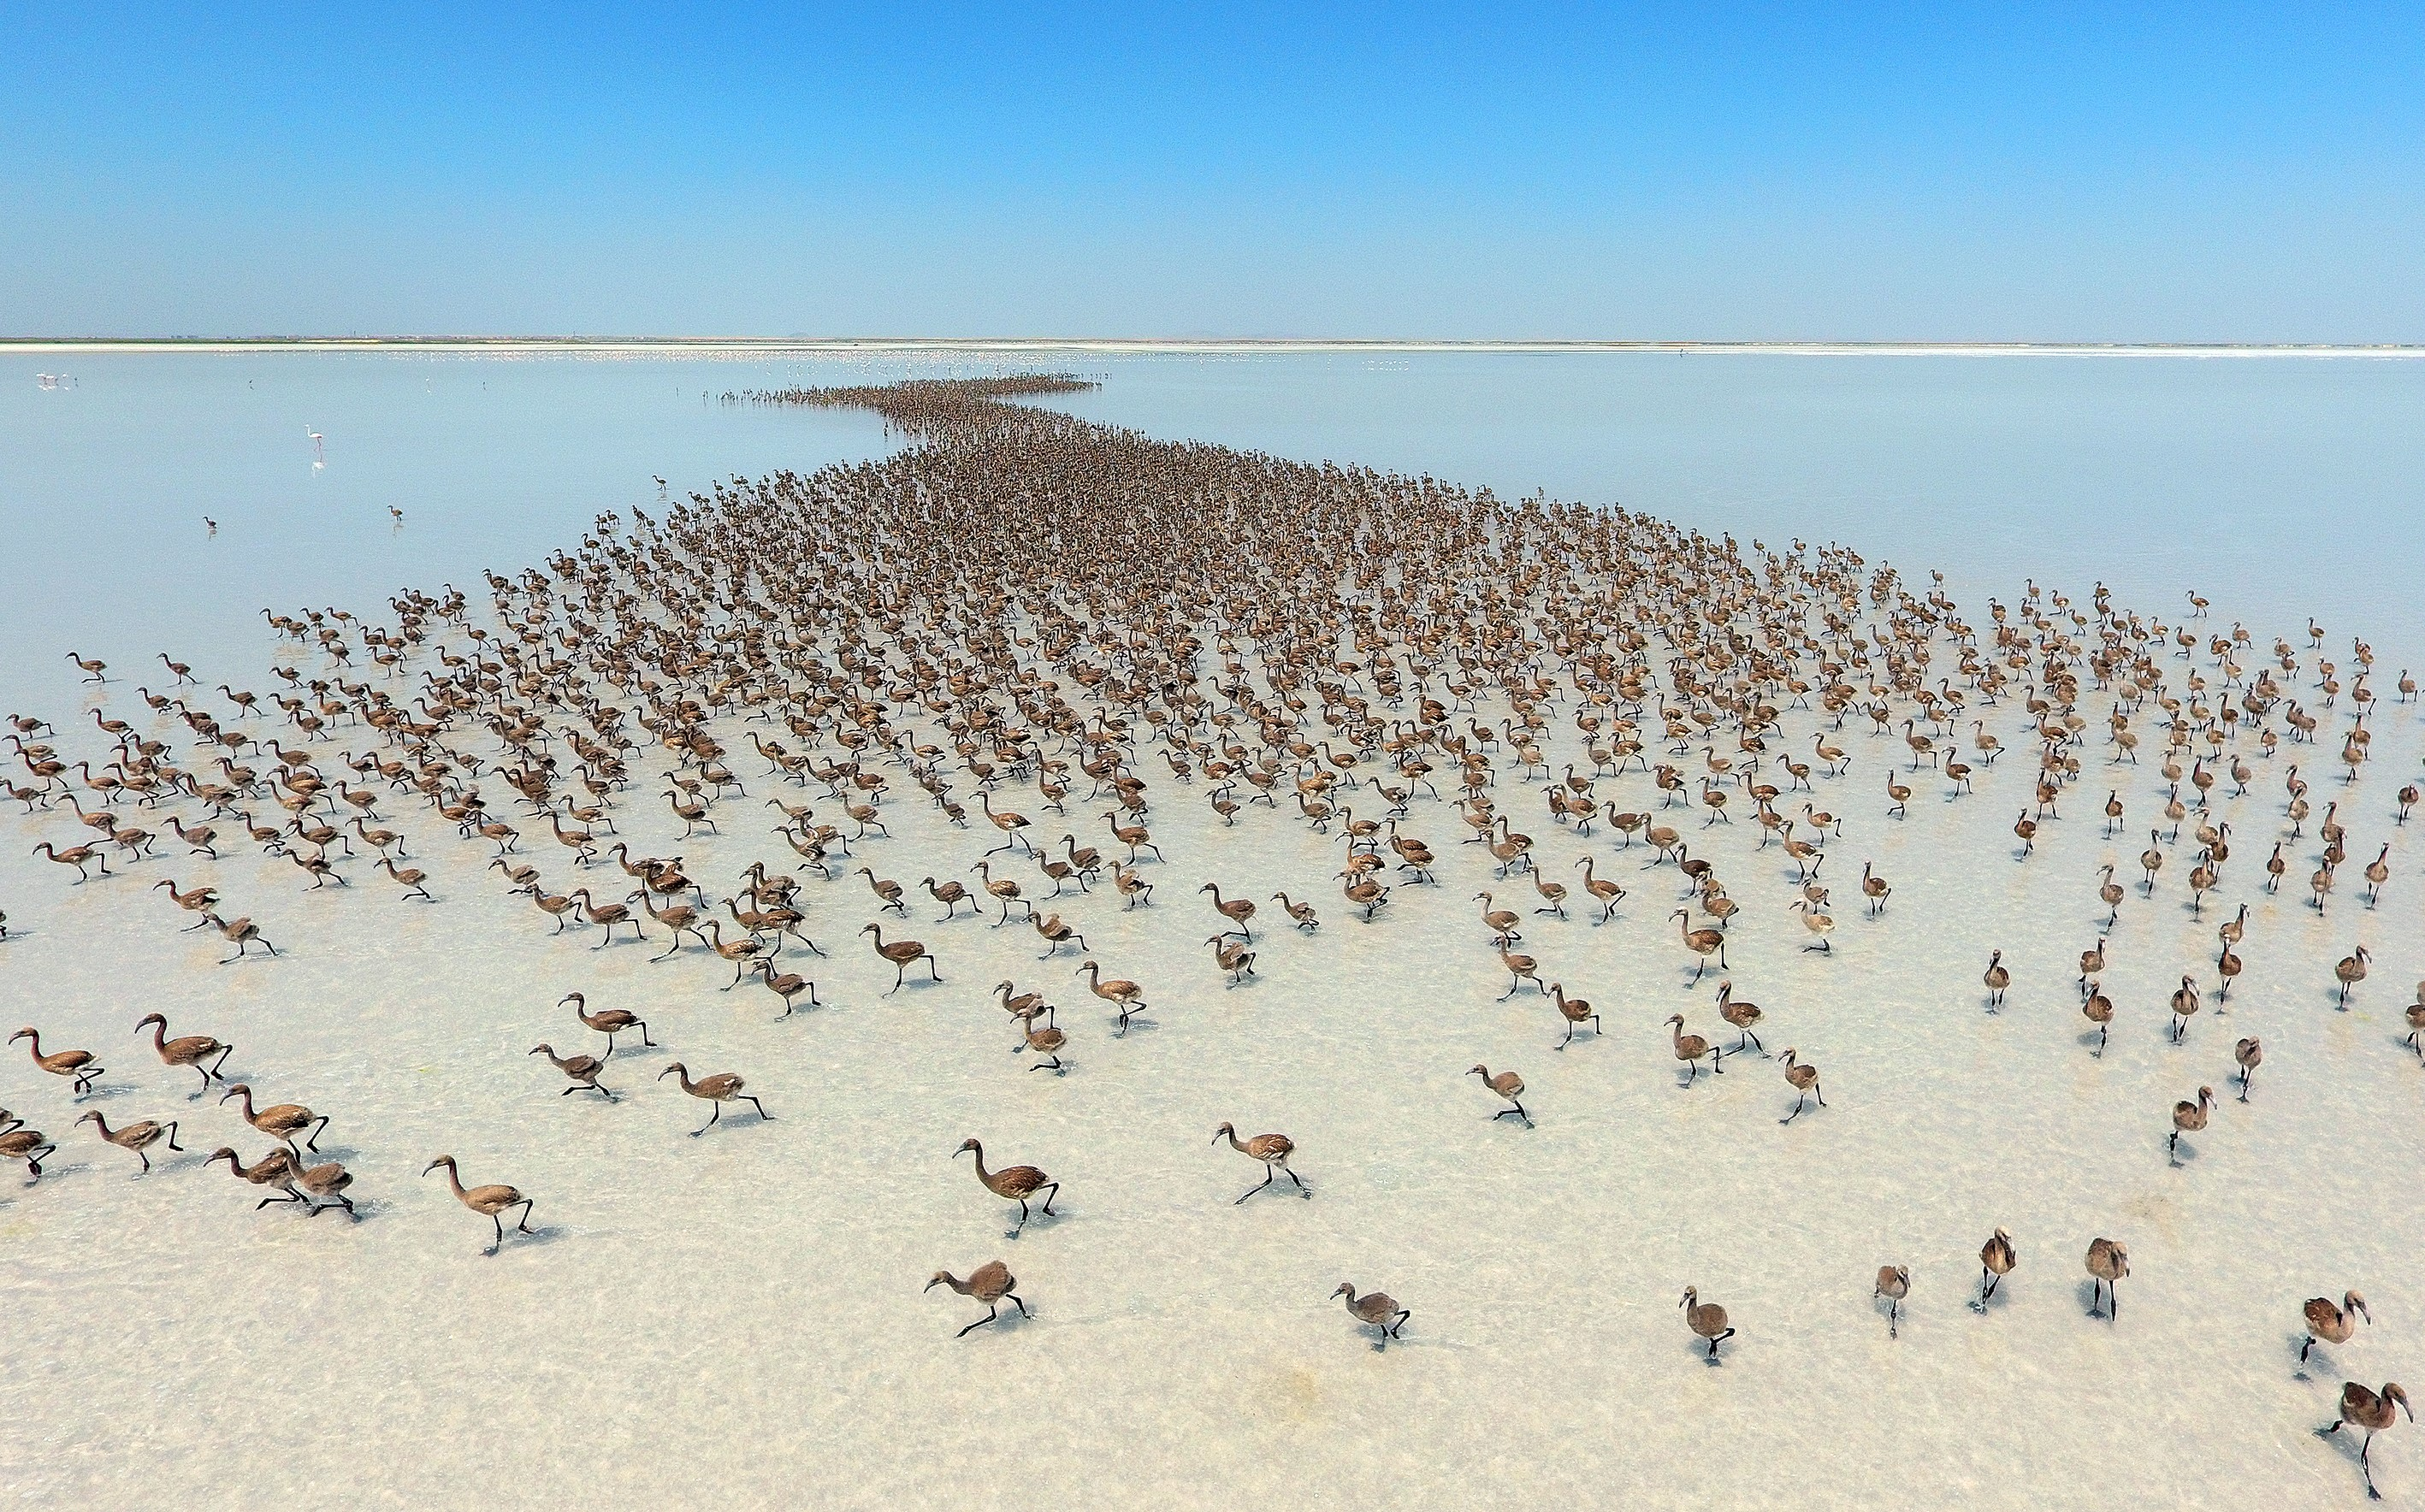 Flamingos migrate after thousands of flamingo chicks have emerged from their nests at Salt Lake, which is home to the biggest flamingo colony in Turkey and the Mediterranean basin, in Aksaray, Turkey, on June 28, 2016.